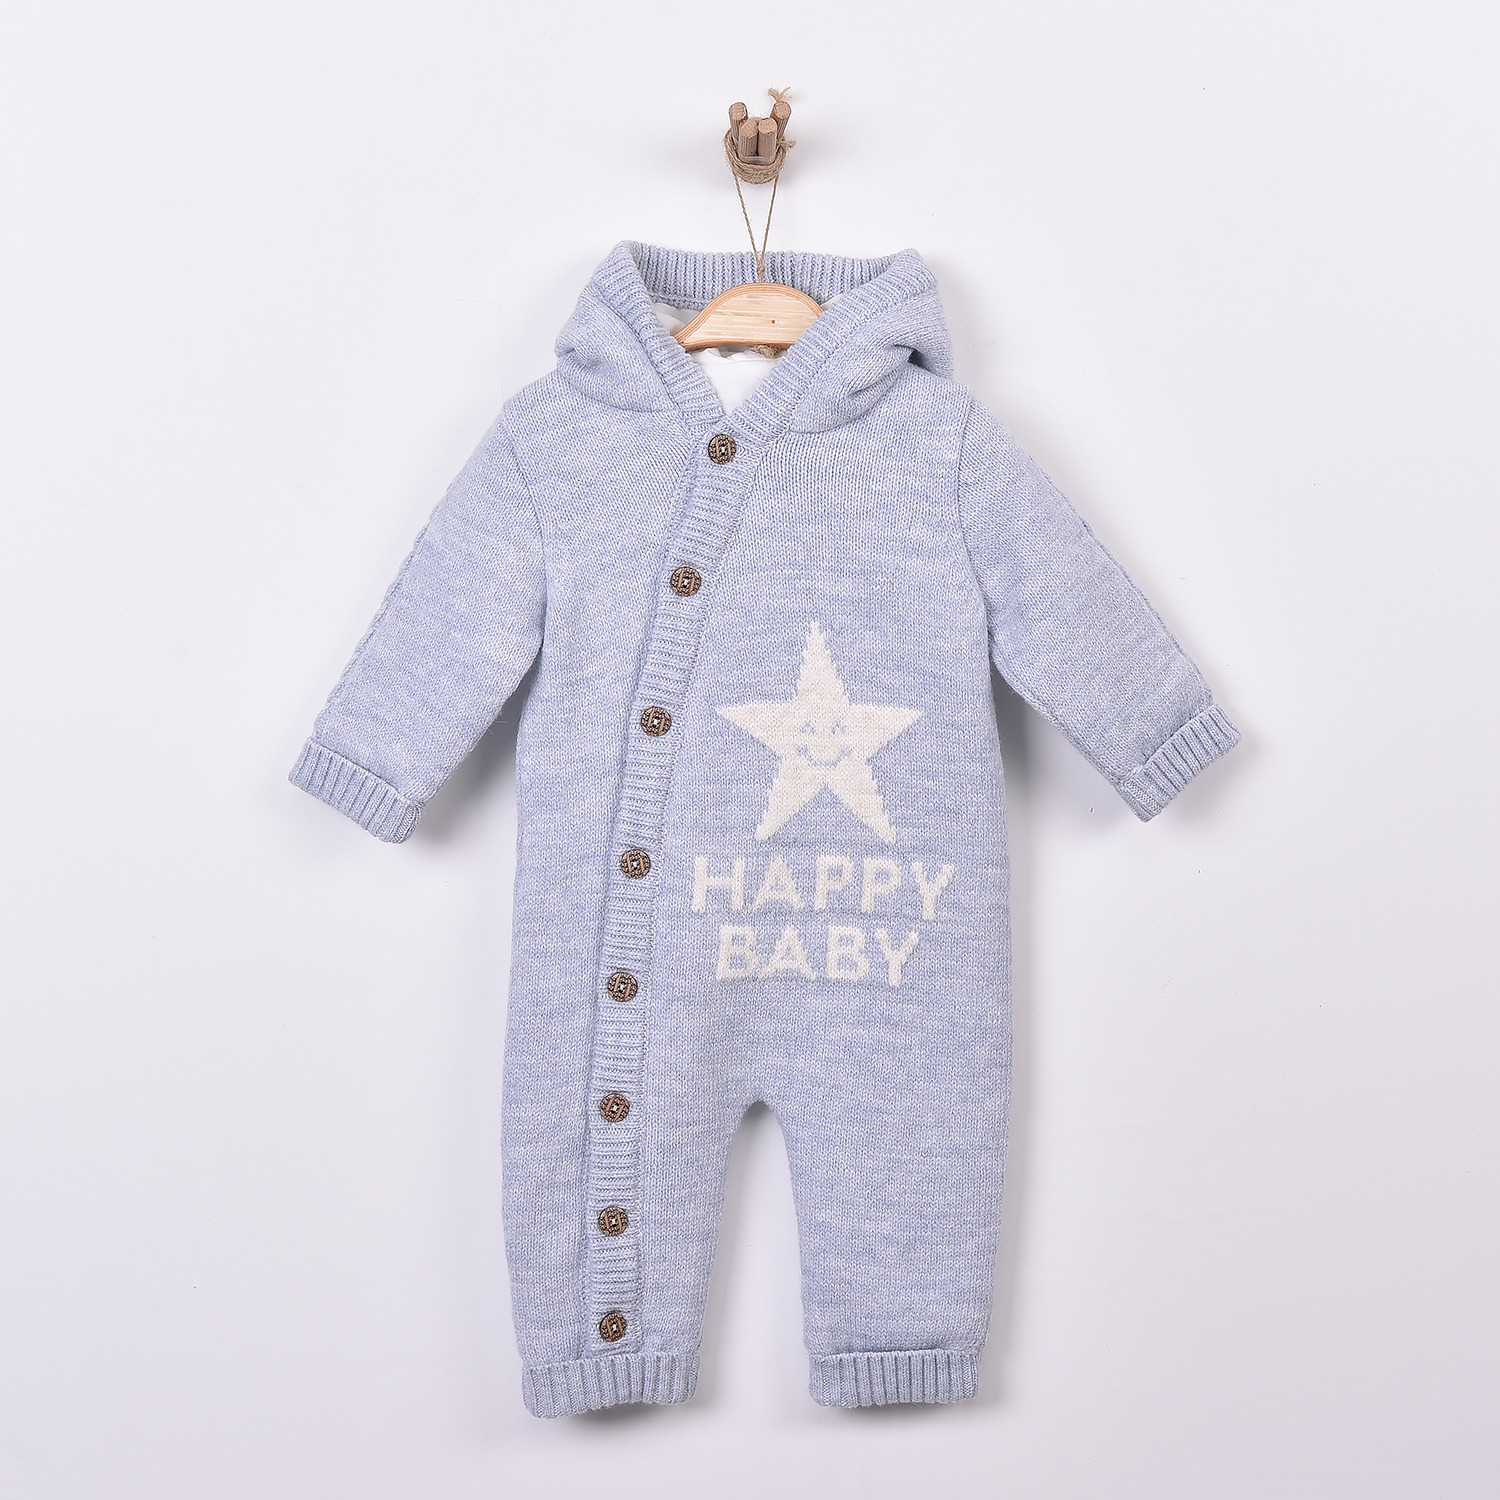 Knitted Baby Jumsuits